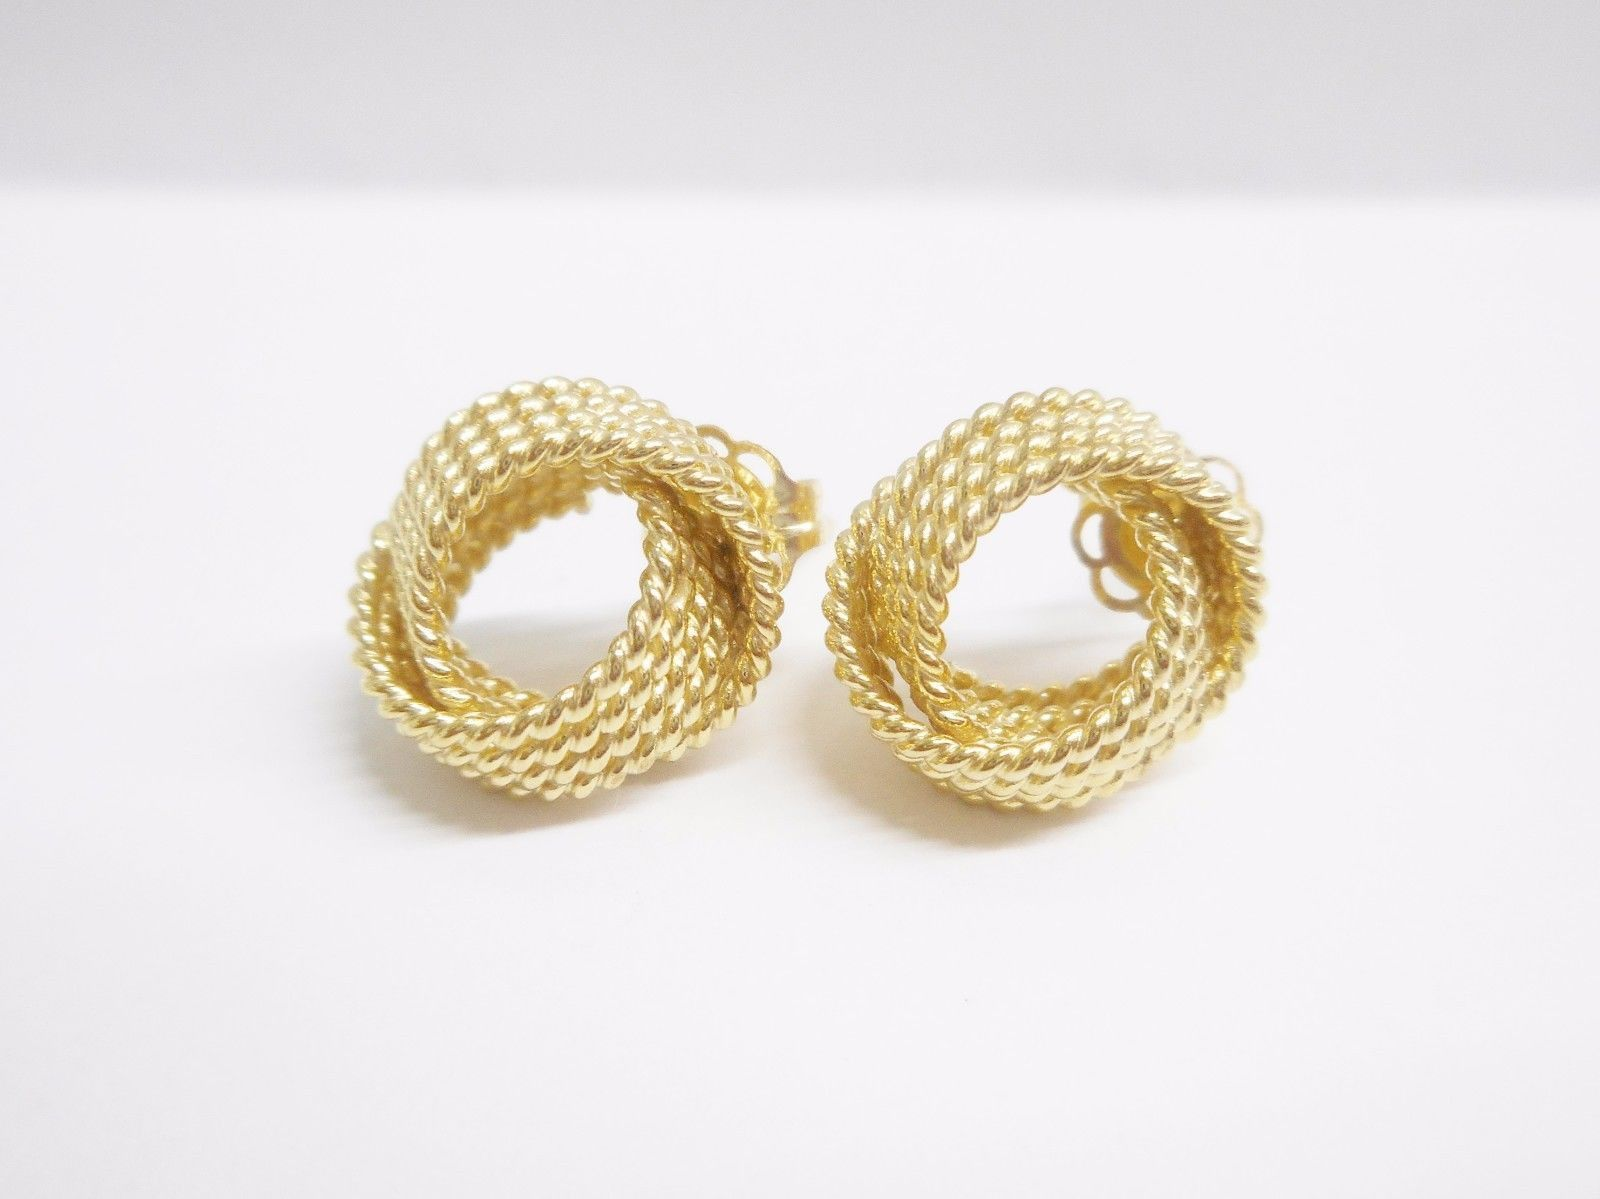 Genuine 14k Yellow Gold Knot Design Stud Post Earrings #2631